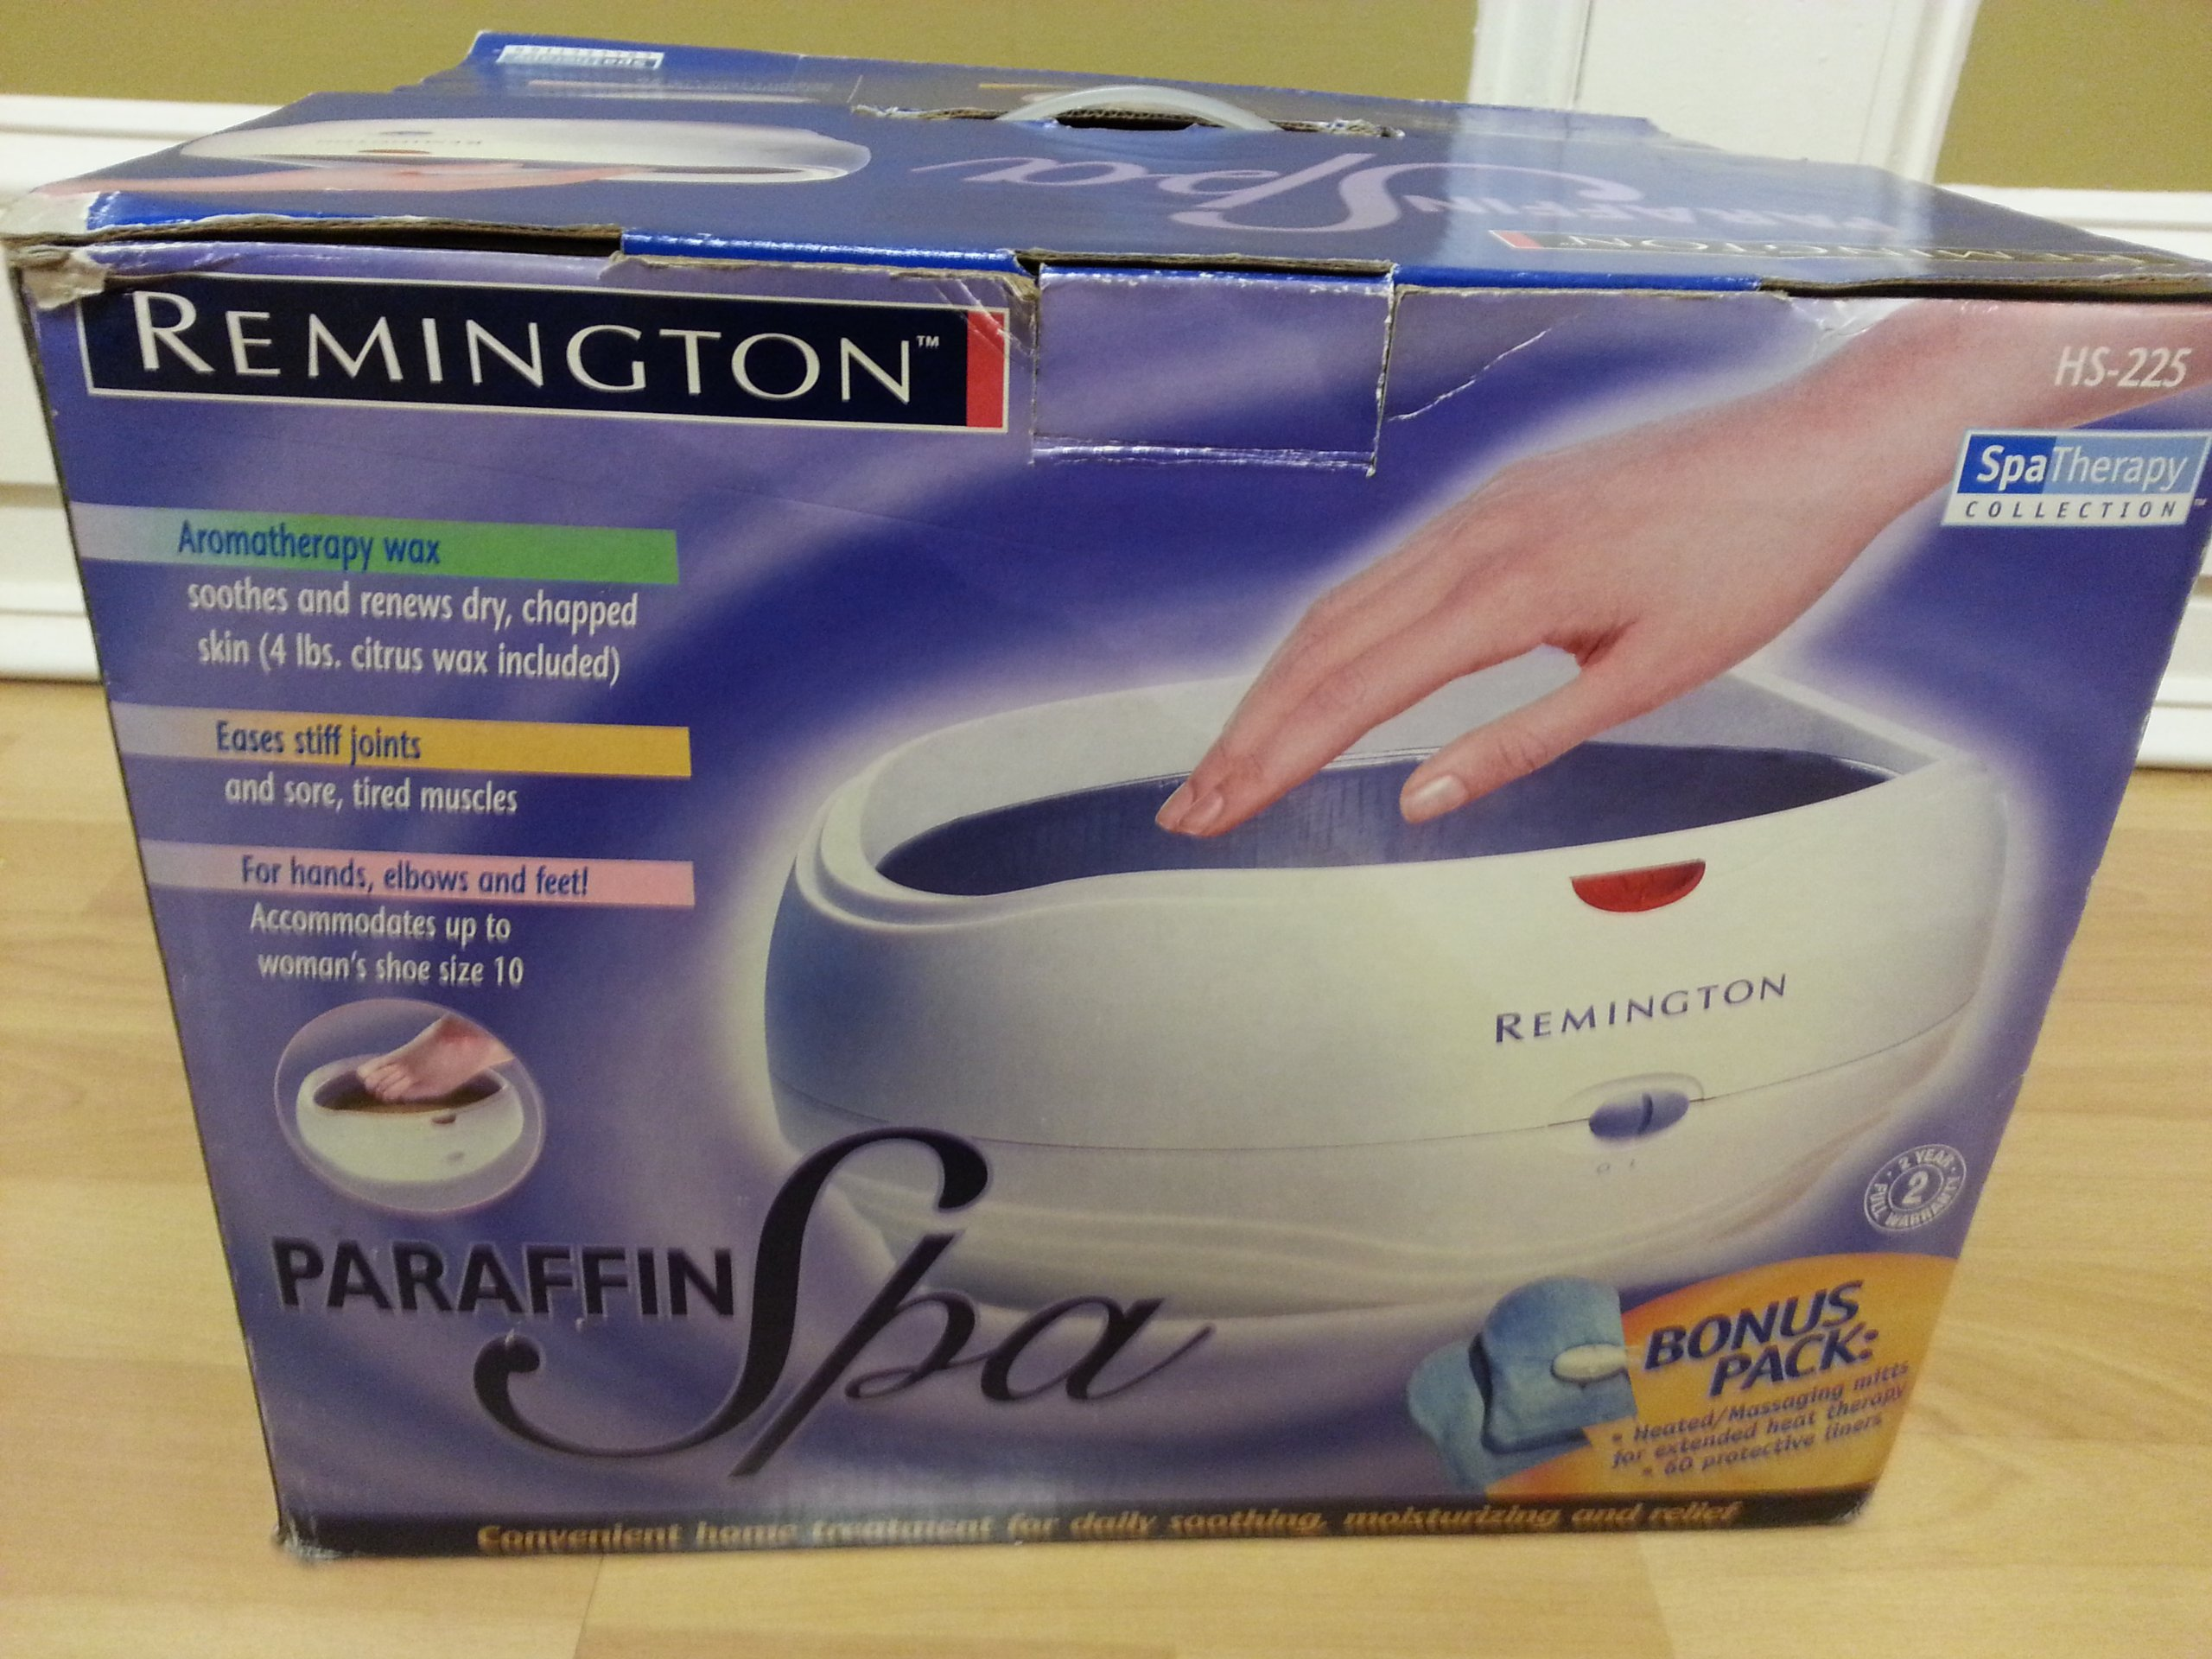 Remington Paraffin Spa Spa Therapy Collection HS-225 by Remington (Image #1)